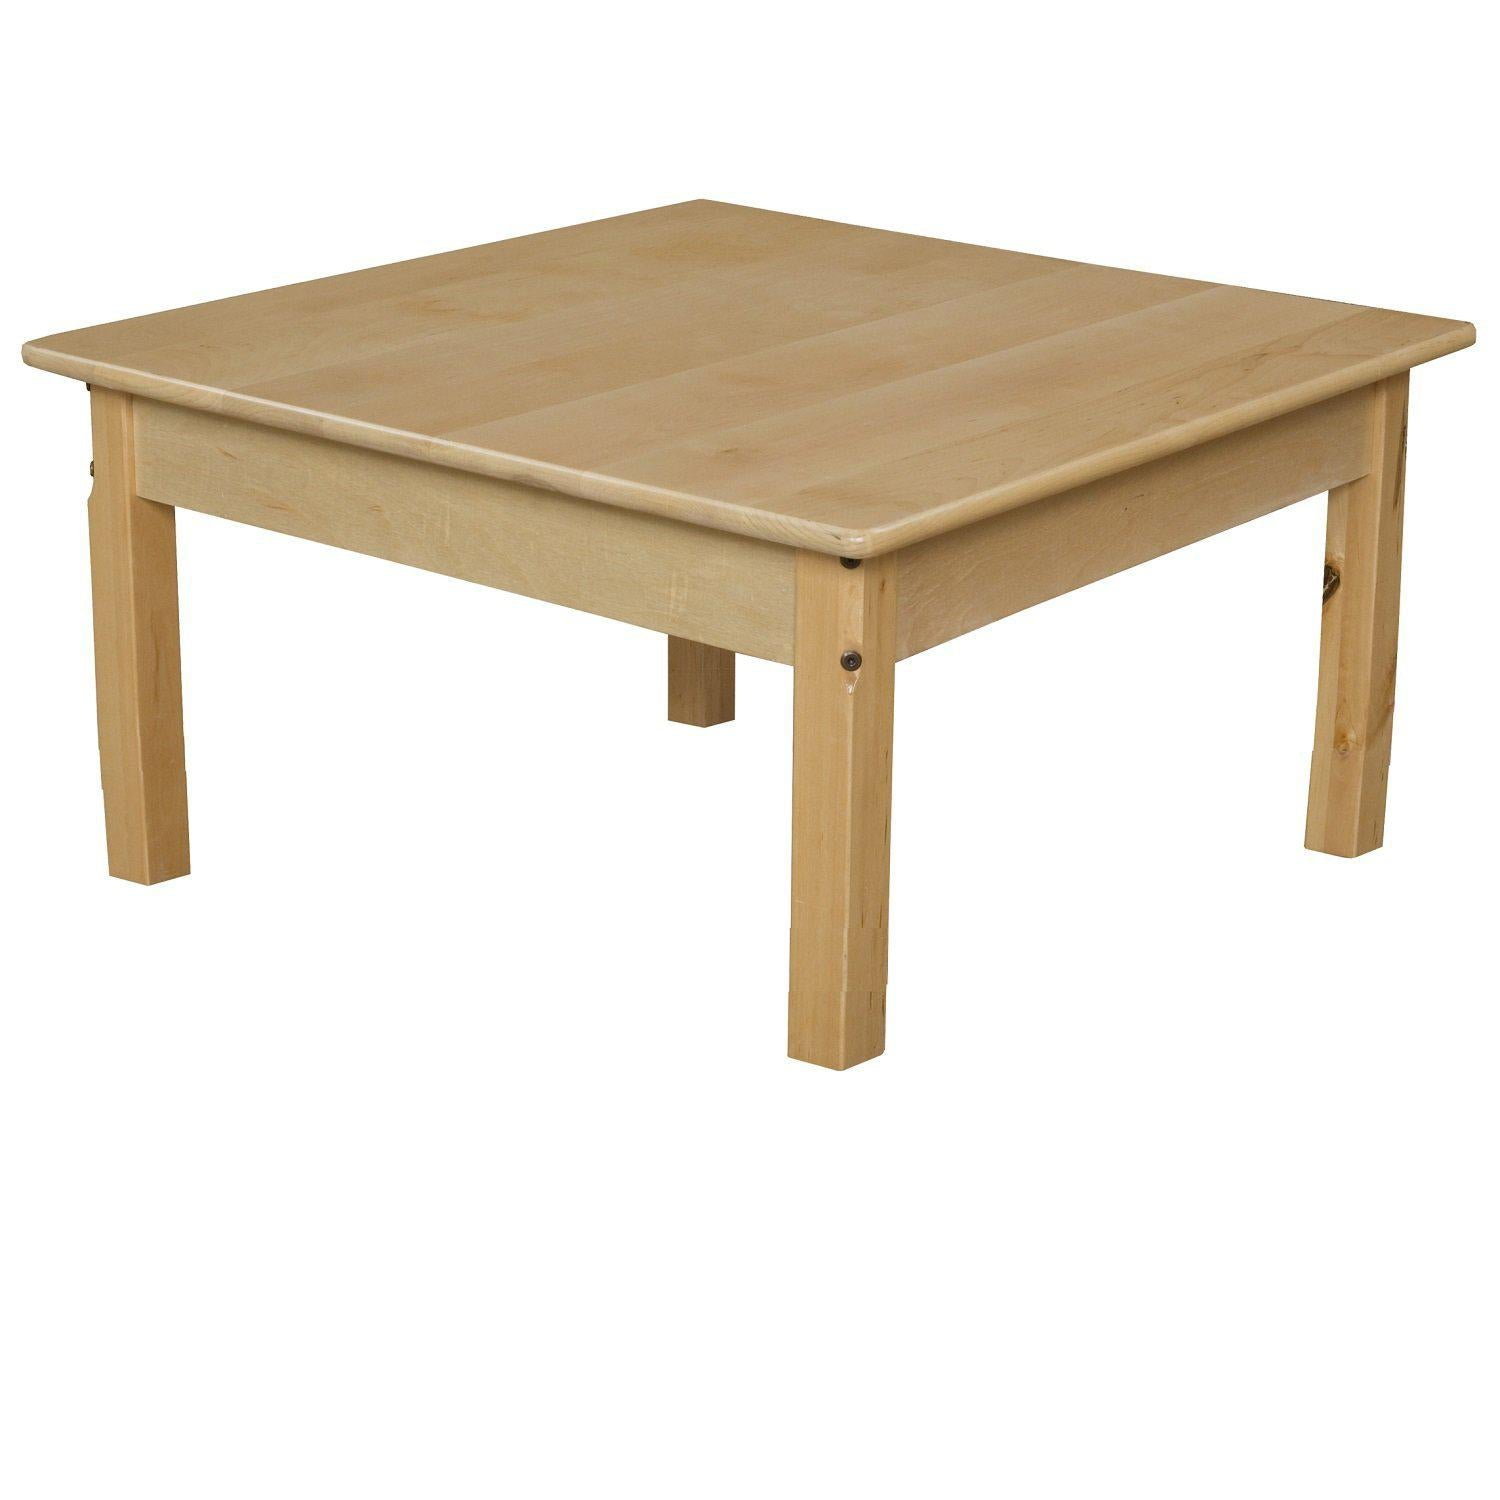 "Wood Designs Birch Hardwood Tables-Tables-30"" Square-14"" Fixed-"